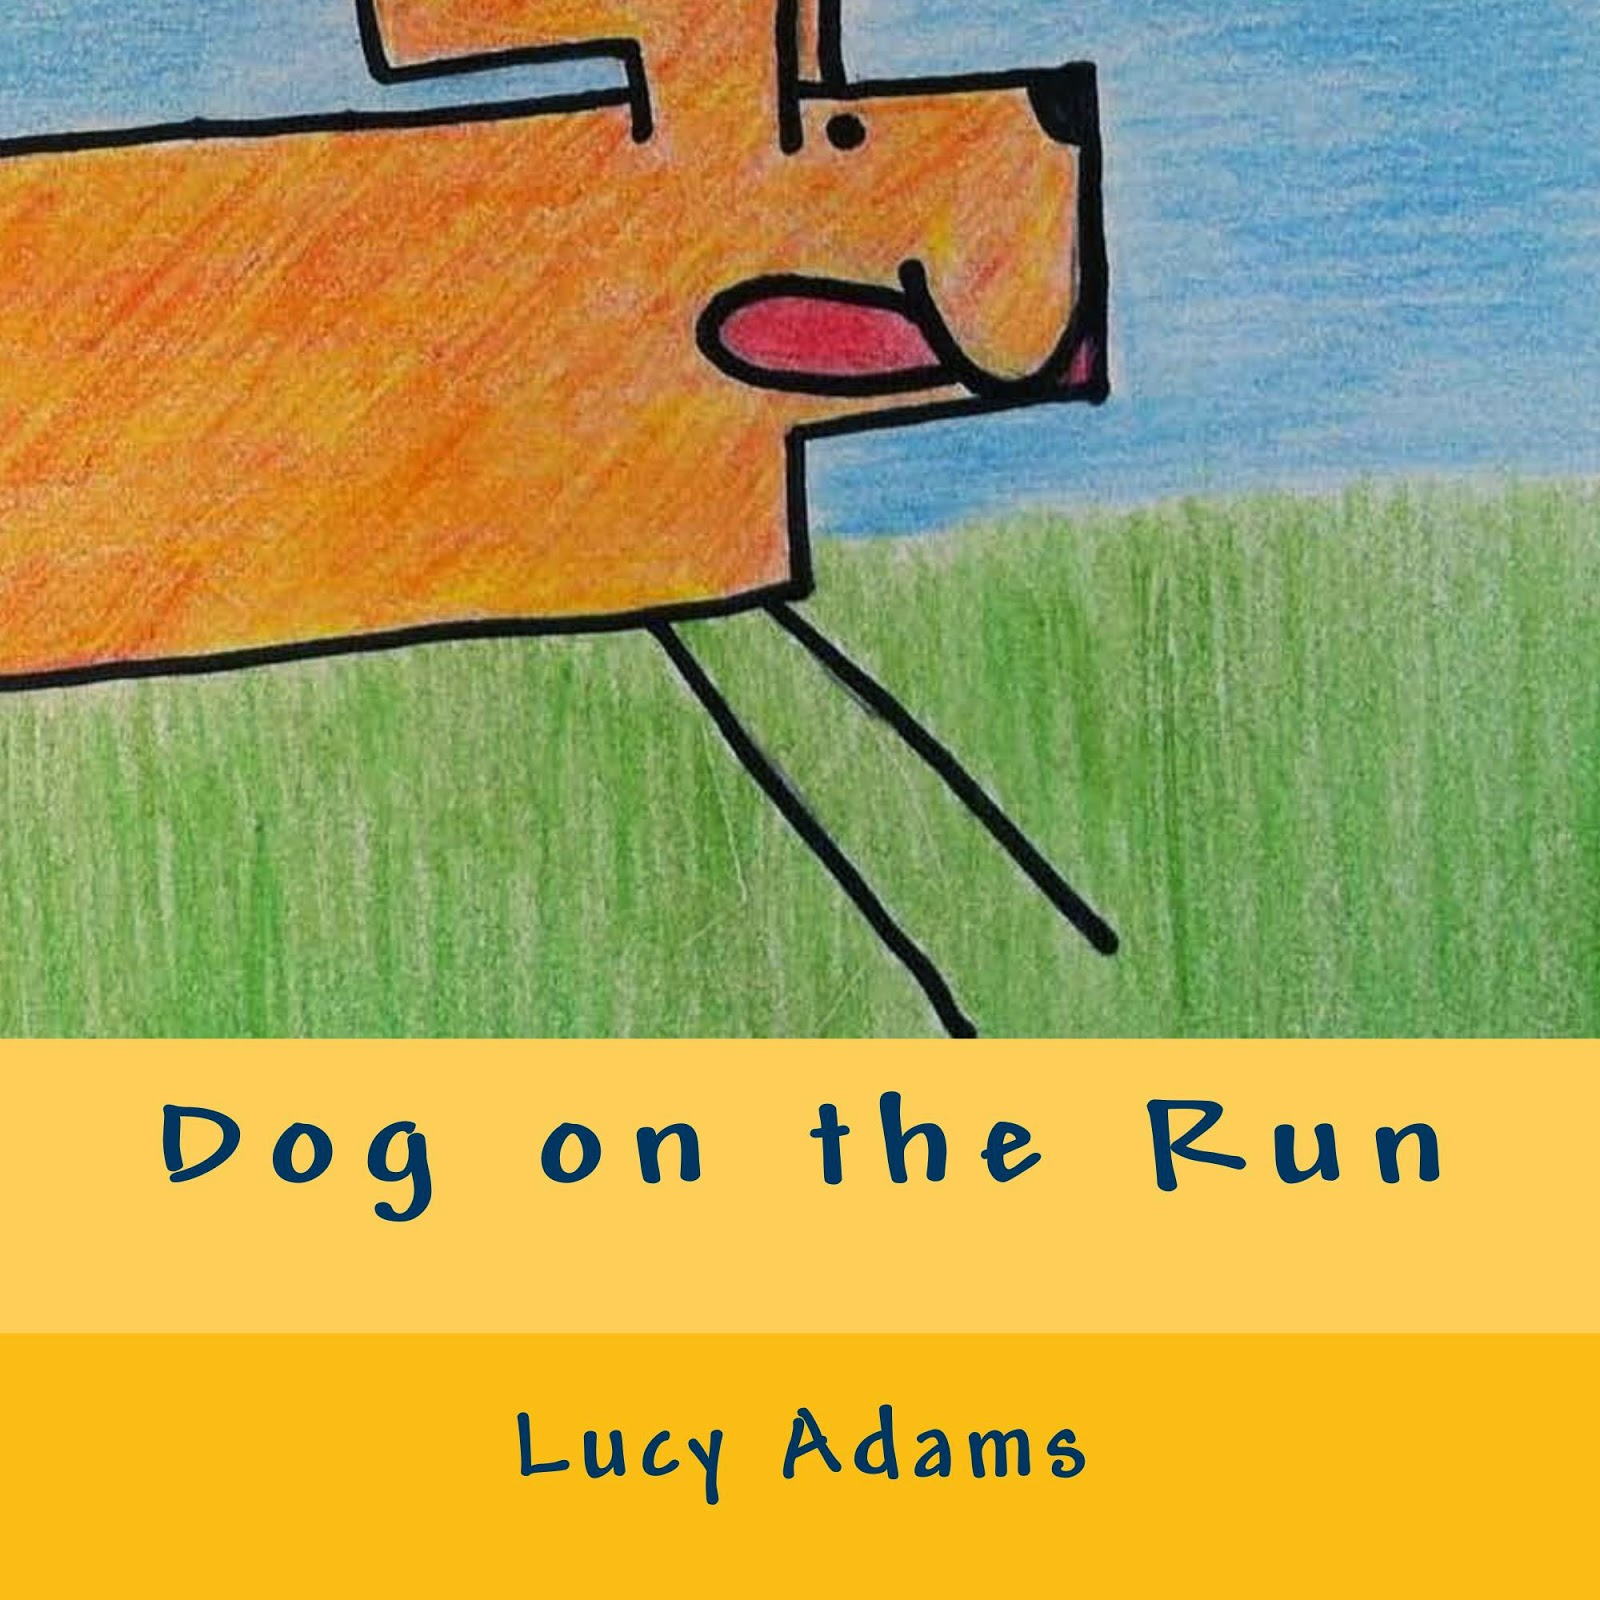 http://www.amazon.com/Dog-Run-Lucy-Adams/dp/1500671215/ref=sr_sp-atf_title_1_13?s=books&ie=UTF8&qid=undefined&sr=1-13&keywords=dog+on+the+run